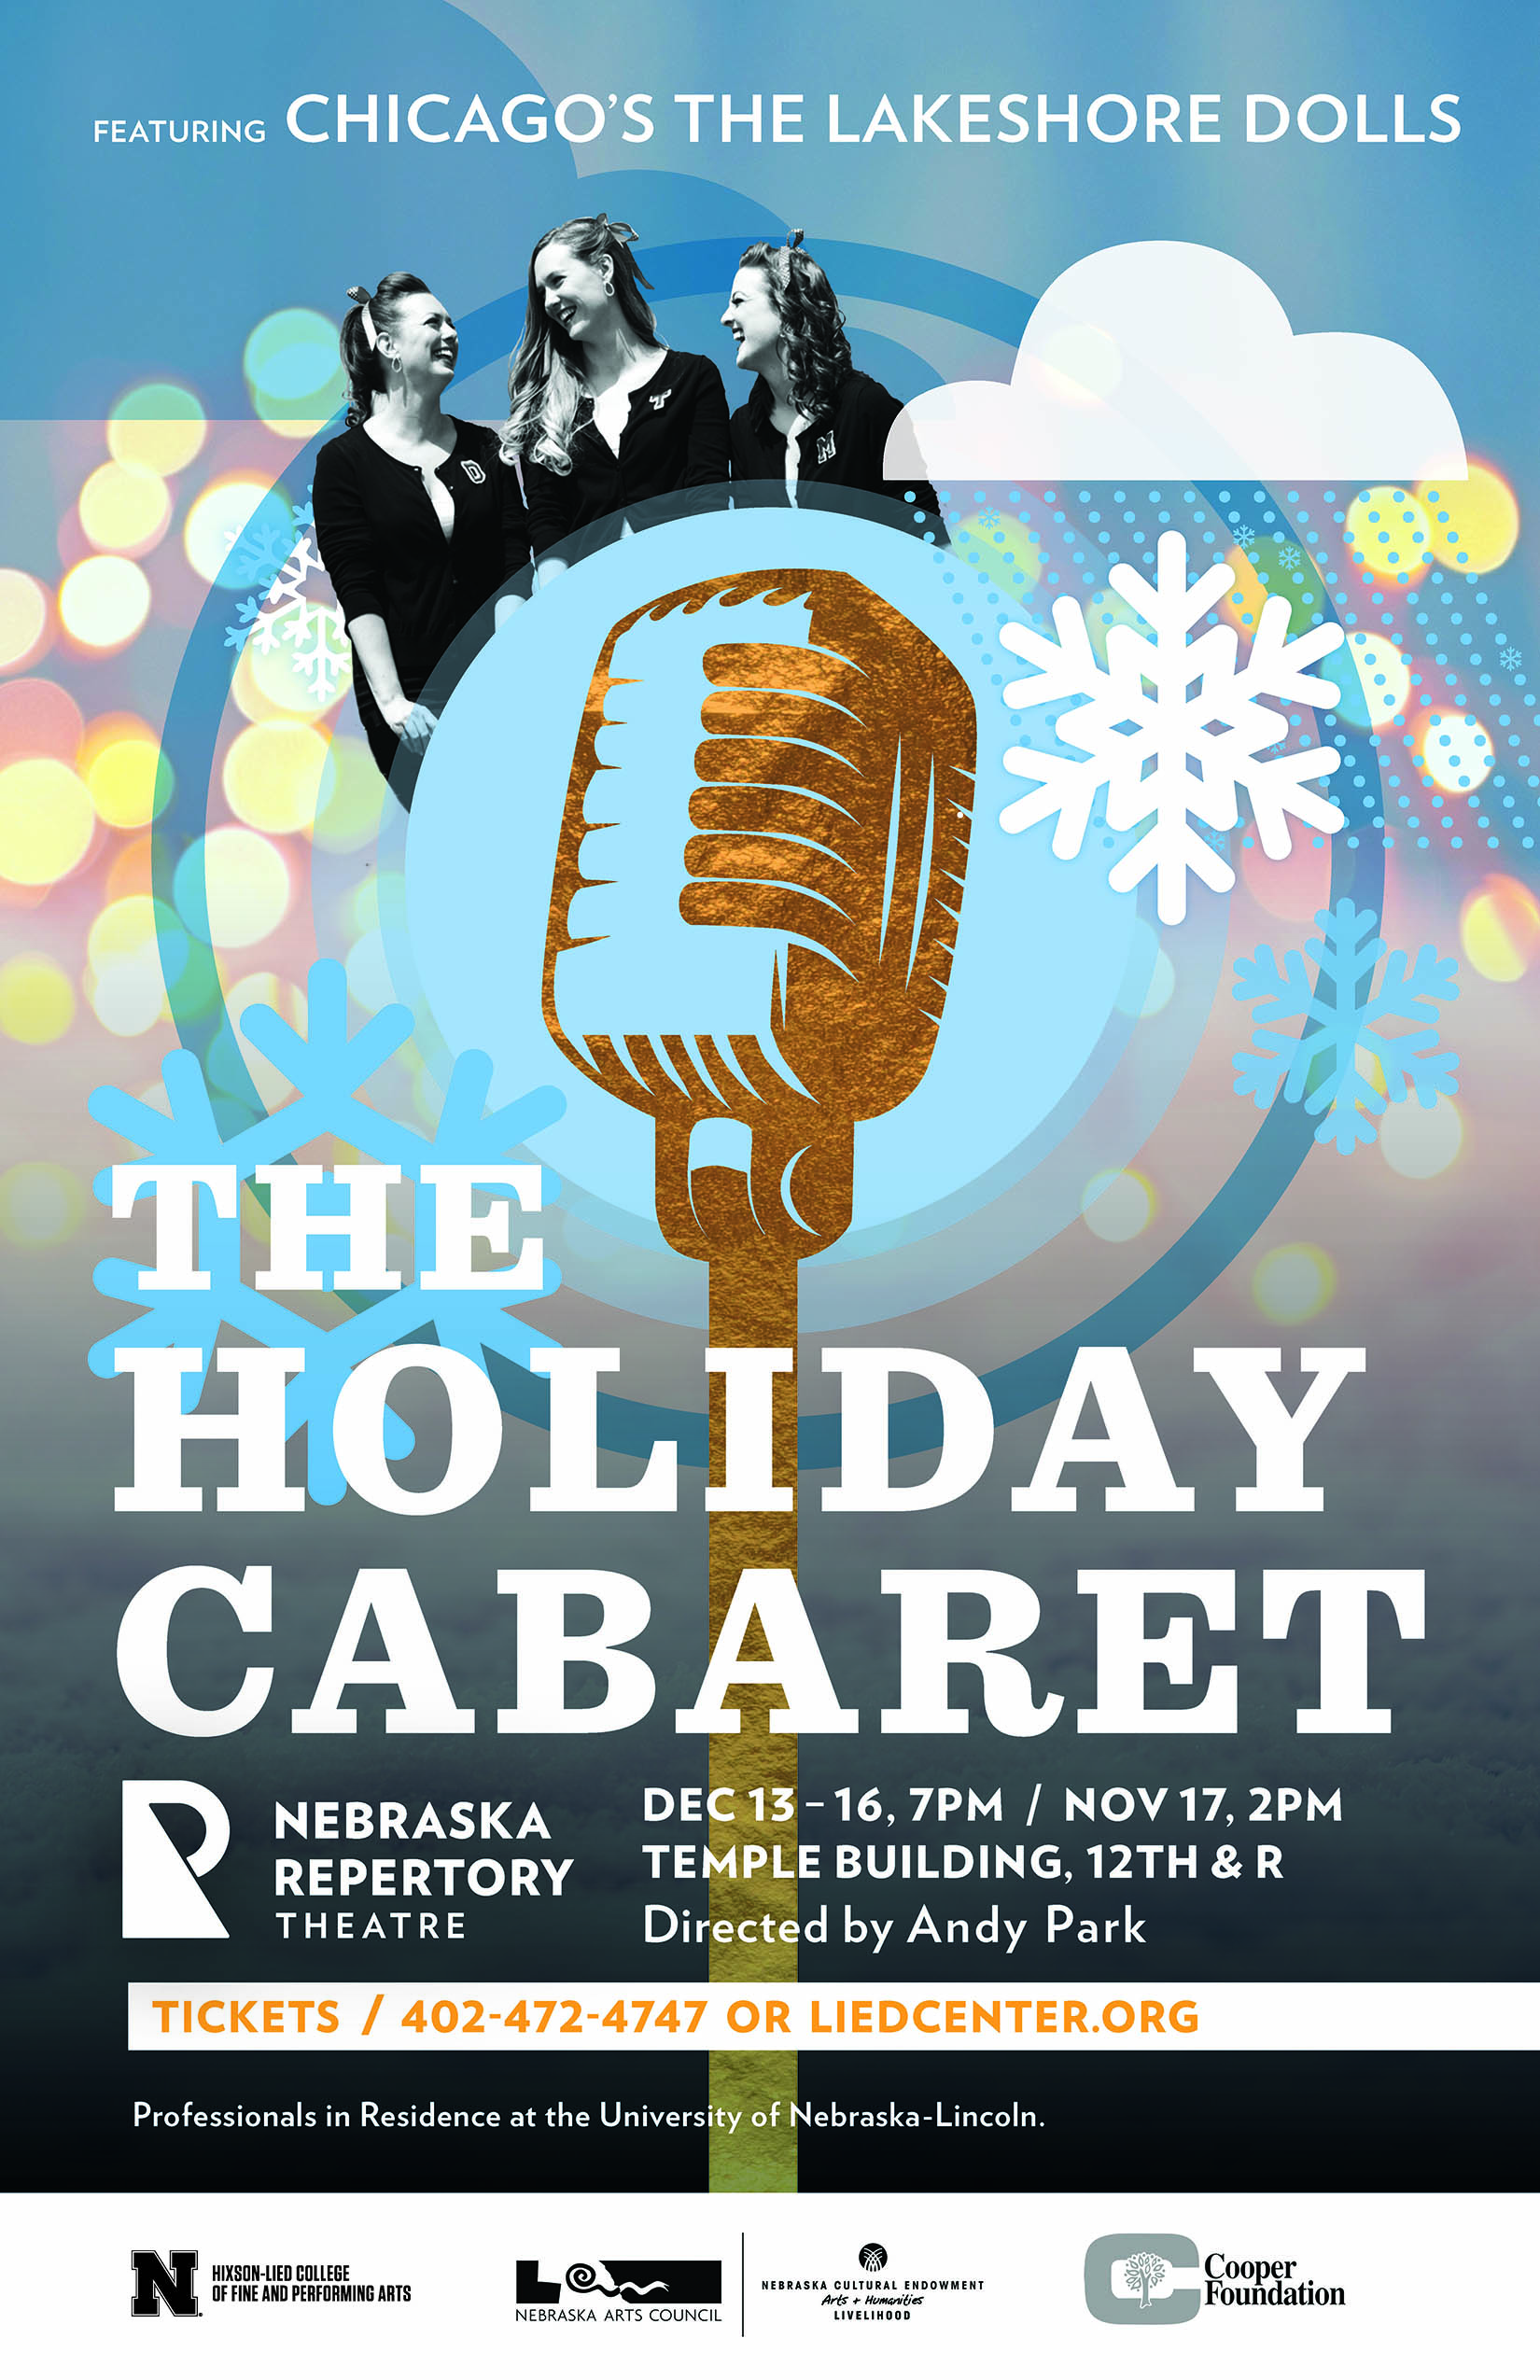 """A poster featuring the words """"The Holiday Cabaret"""" overalid on a playful illustration of an old-fashioned microphone and colorful bocce lights."""